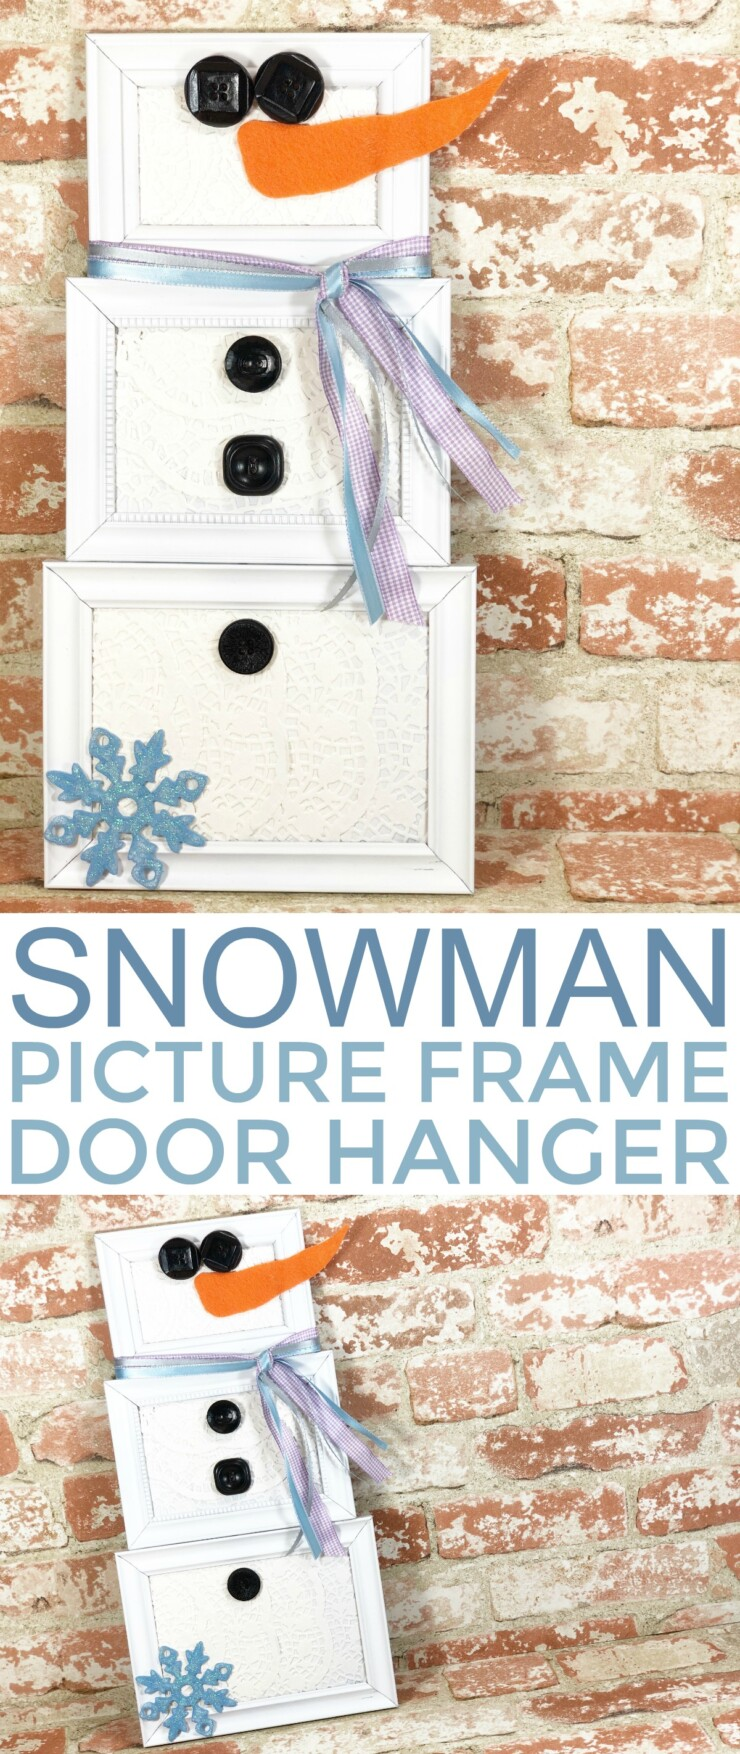 Simple picture frames and paper doilies transform into a cute as can be snowman to decorate your door all winter long! Make this Picture Frame Snowman Door Hanger in just about 30 minutes with supplies from any dollar store.